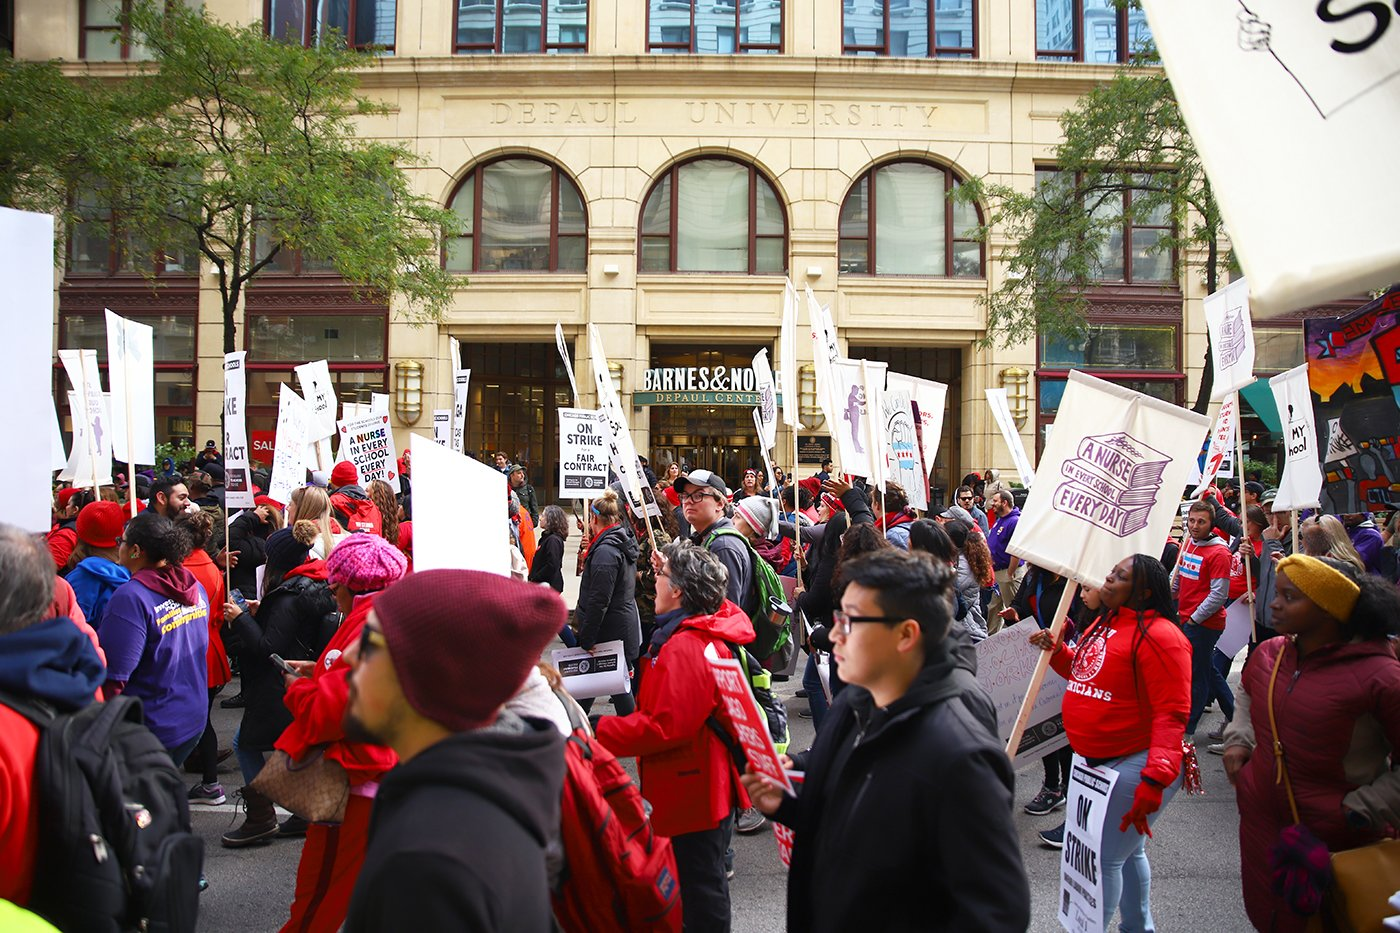 Members of the Chicago Teachers Union walk past the Loop's DePaul Center on Thursday, Oct. 17.